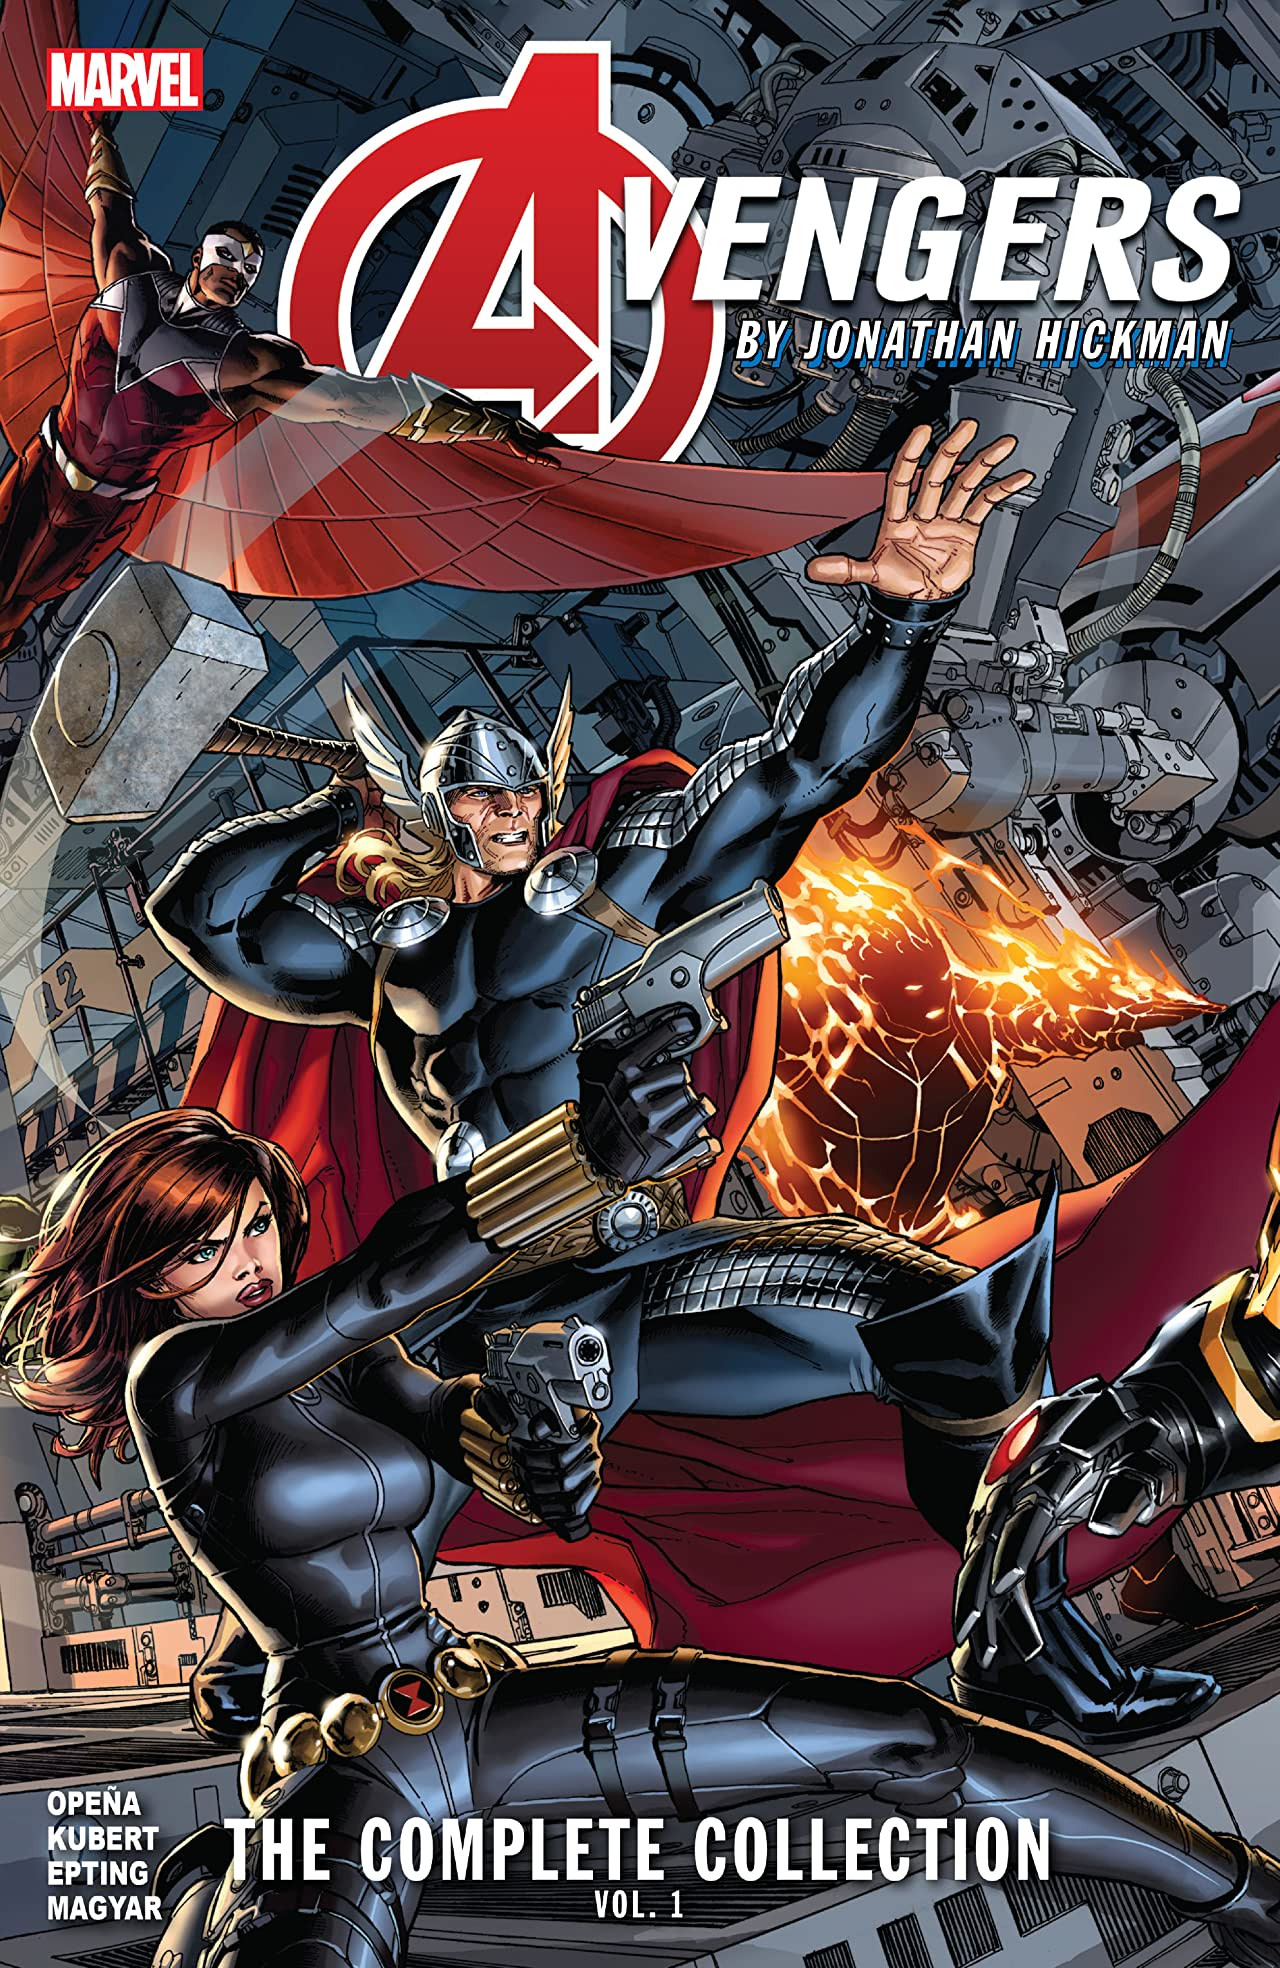 Avengers by Jonathan Hickman: The Complete Collection Vol 1 1